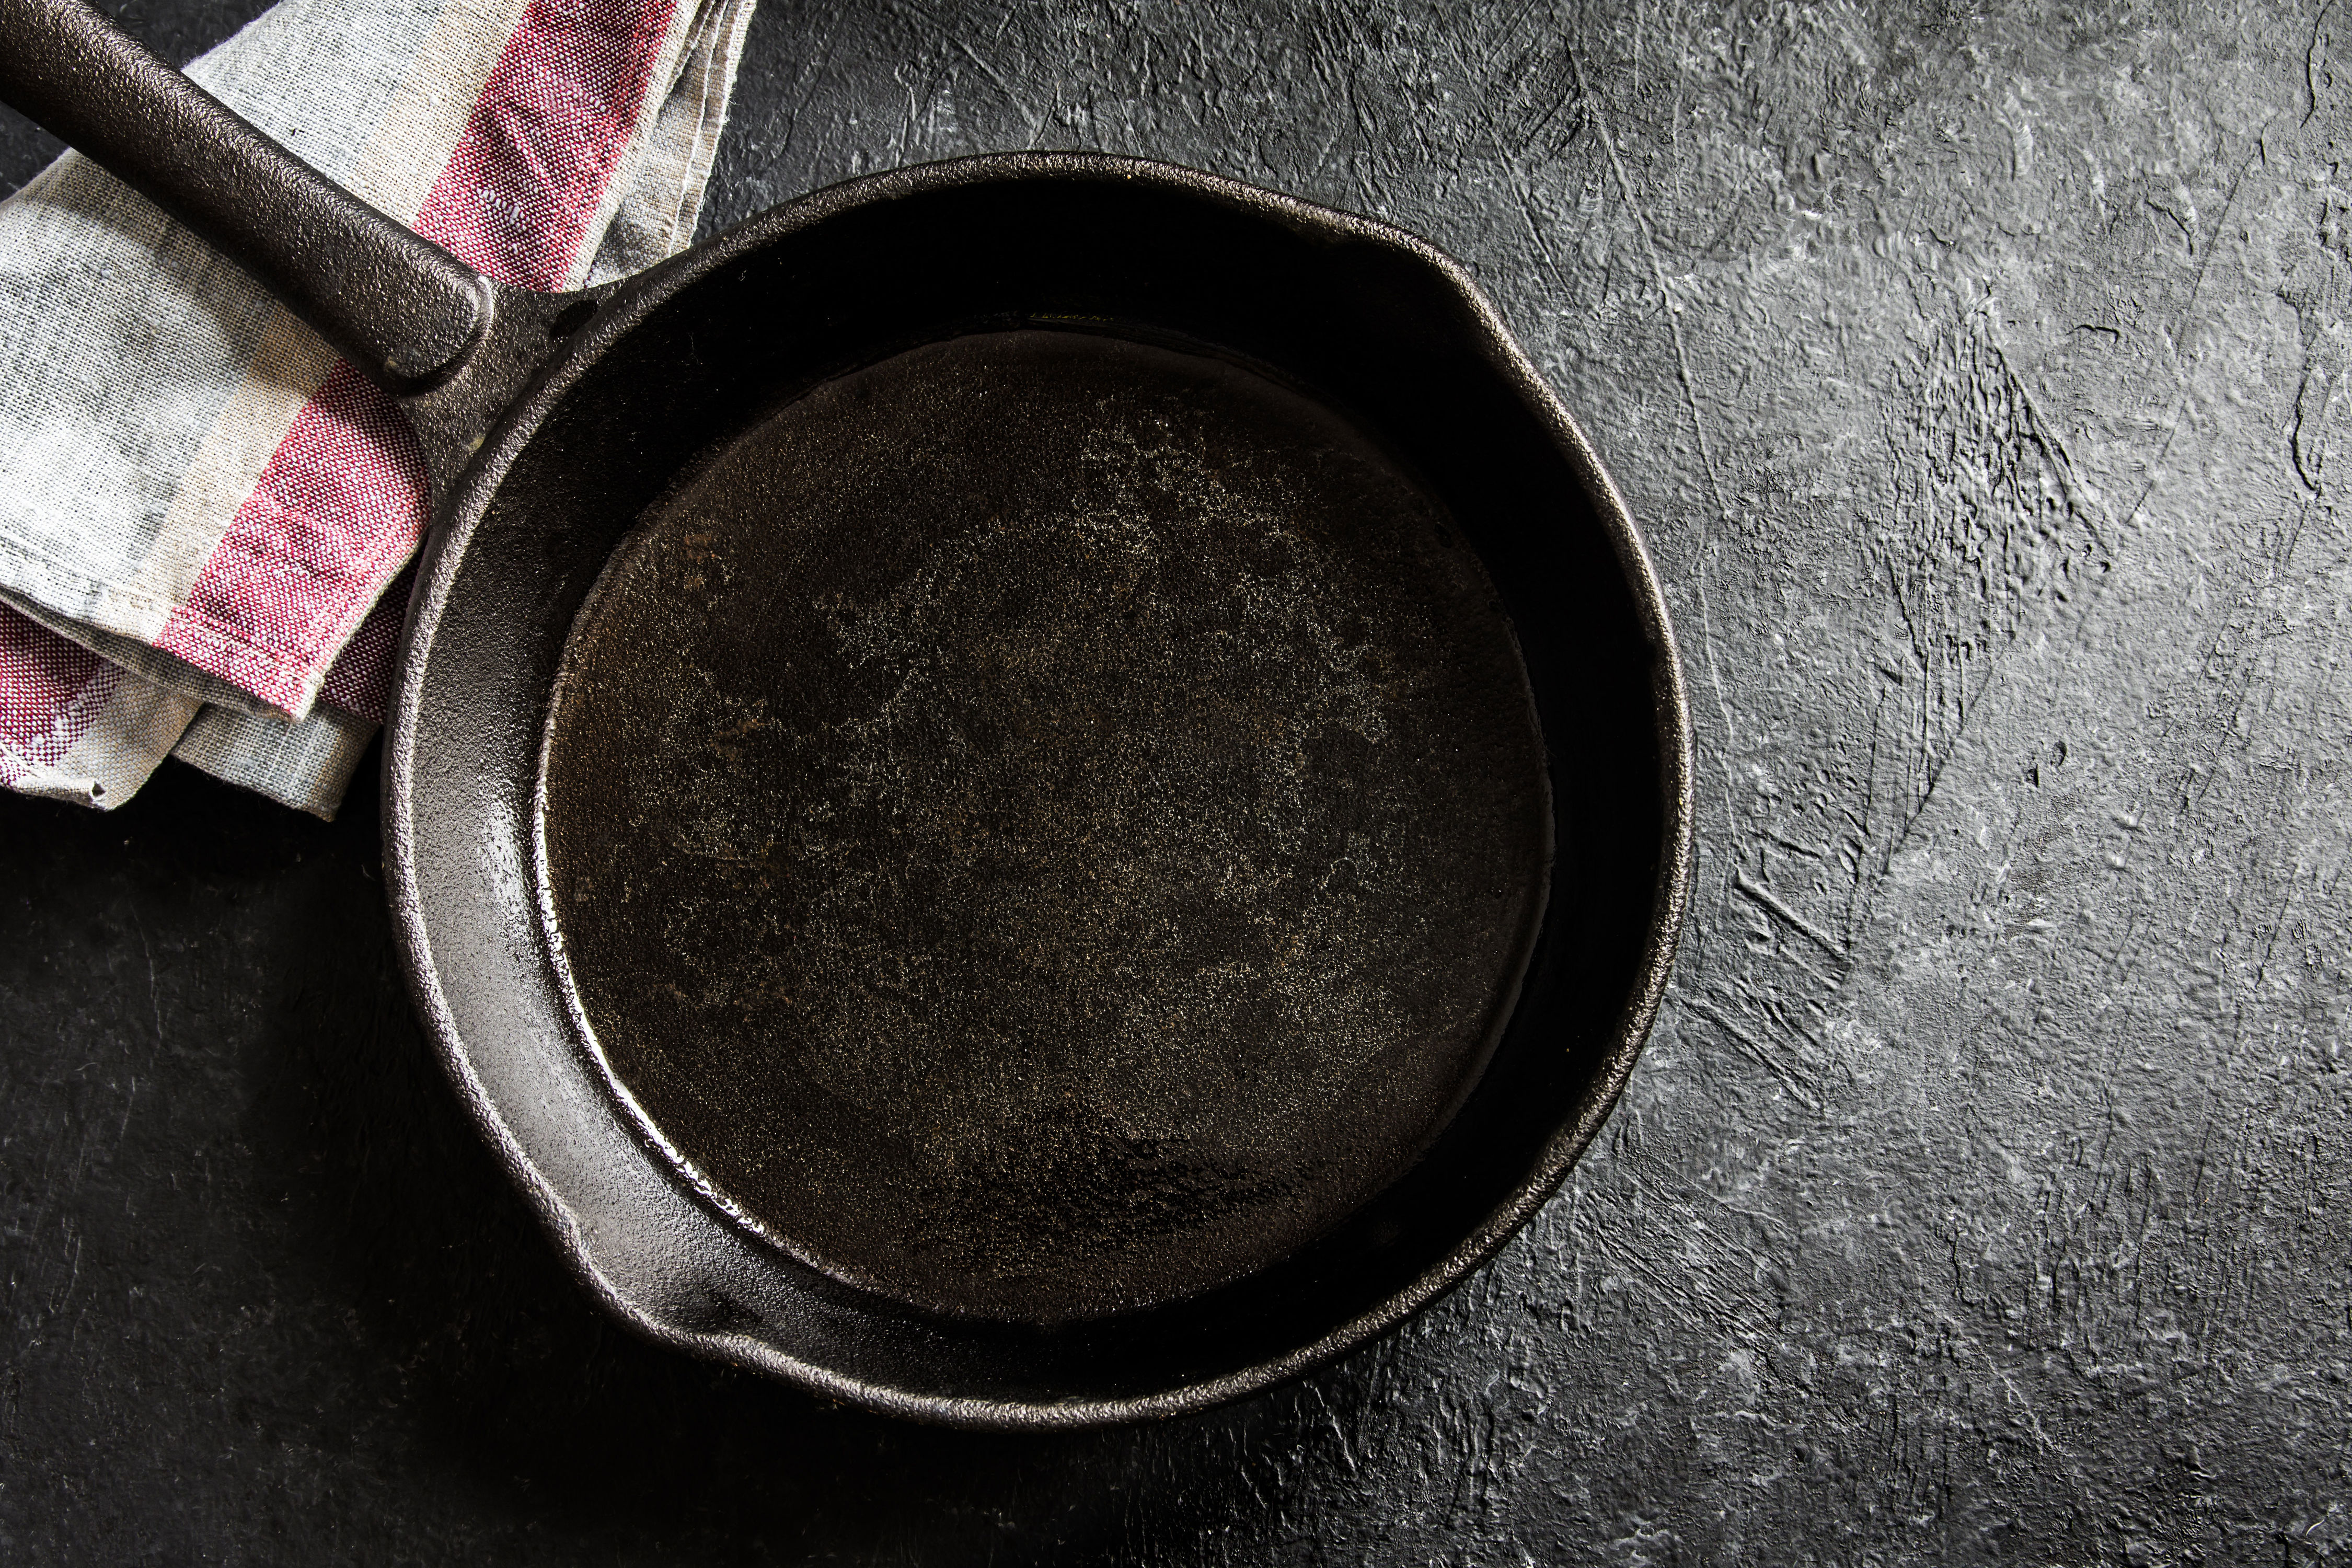 Never Worry About Cleaning Your Cast-Iron Skillet Again with This Simple Trick